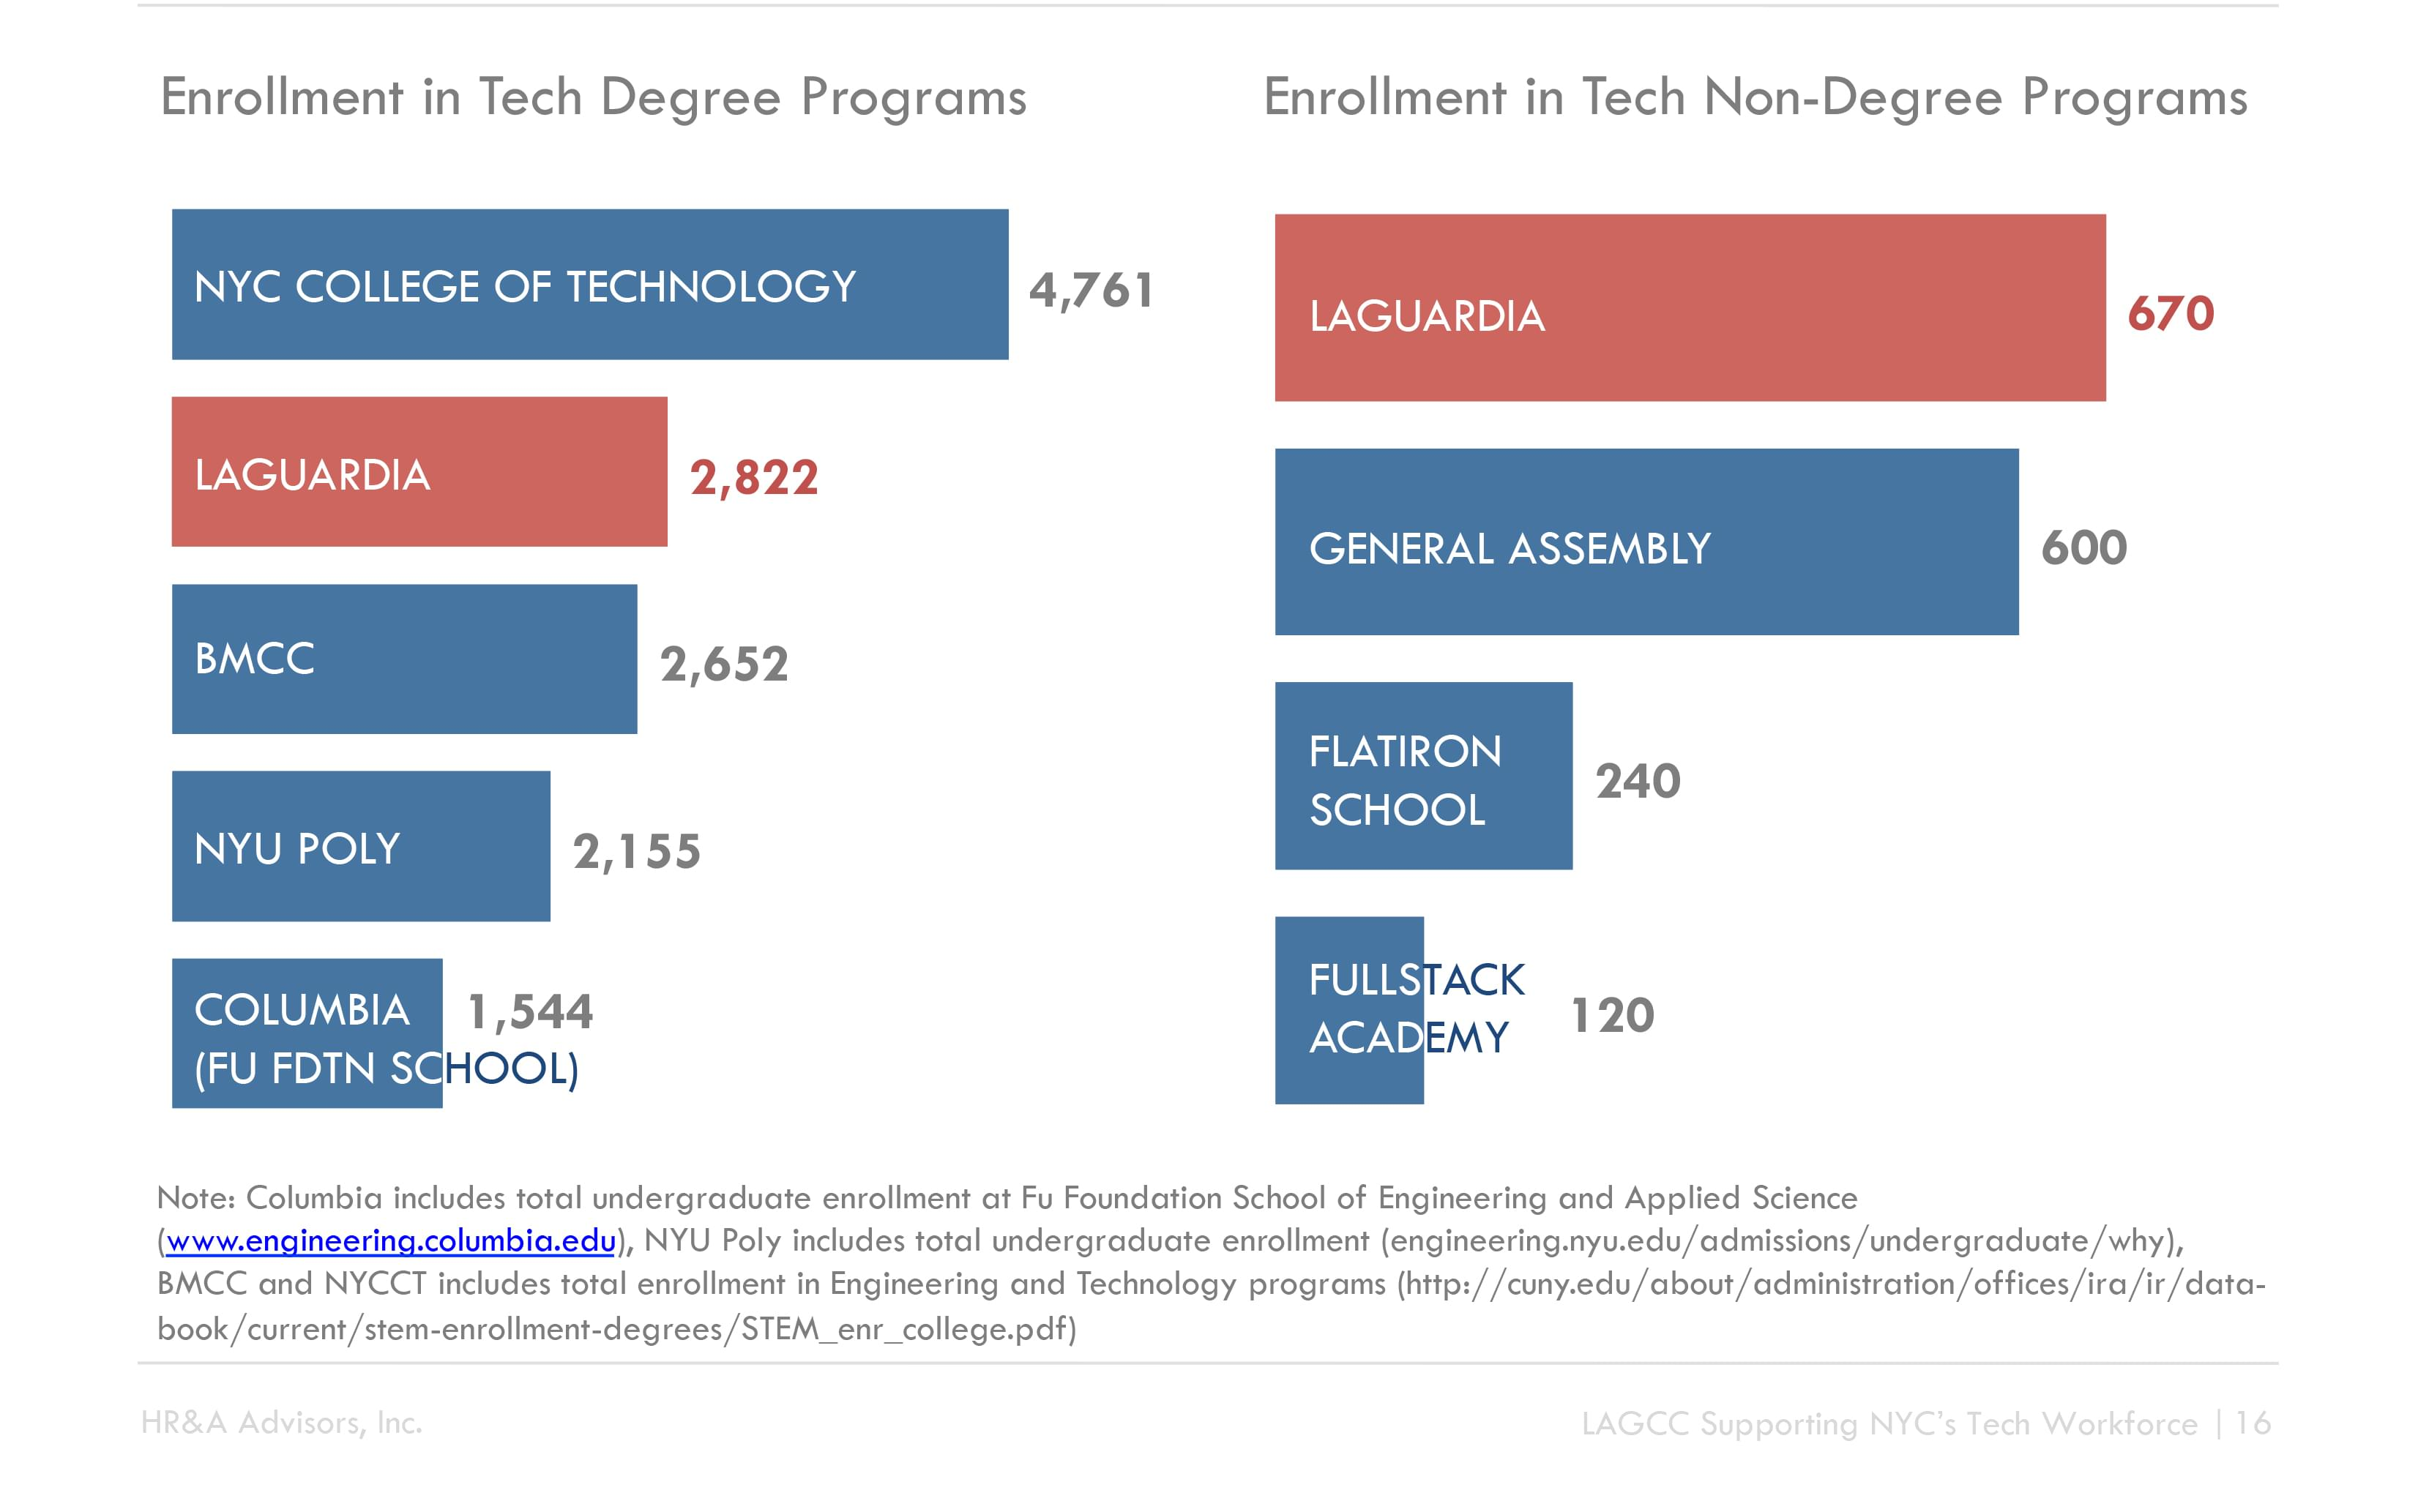 Wage Chart about enrollment in tech programs